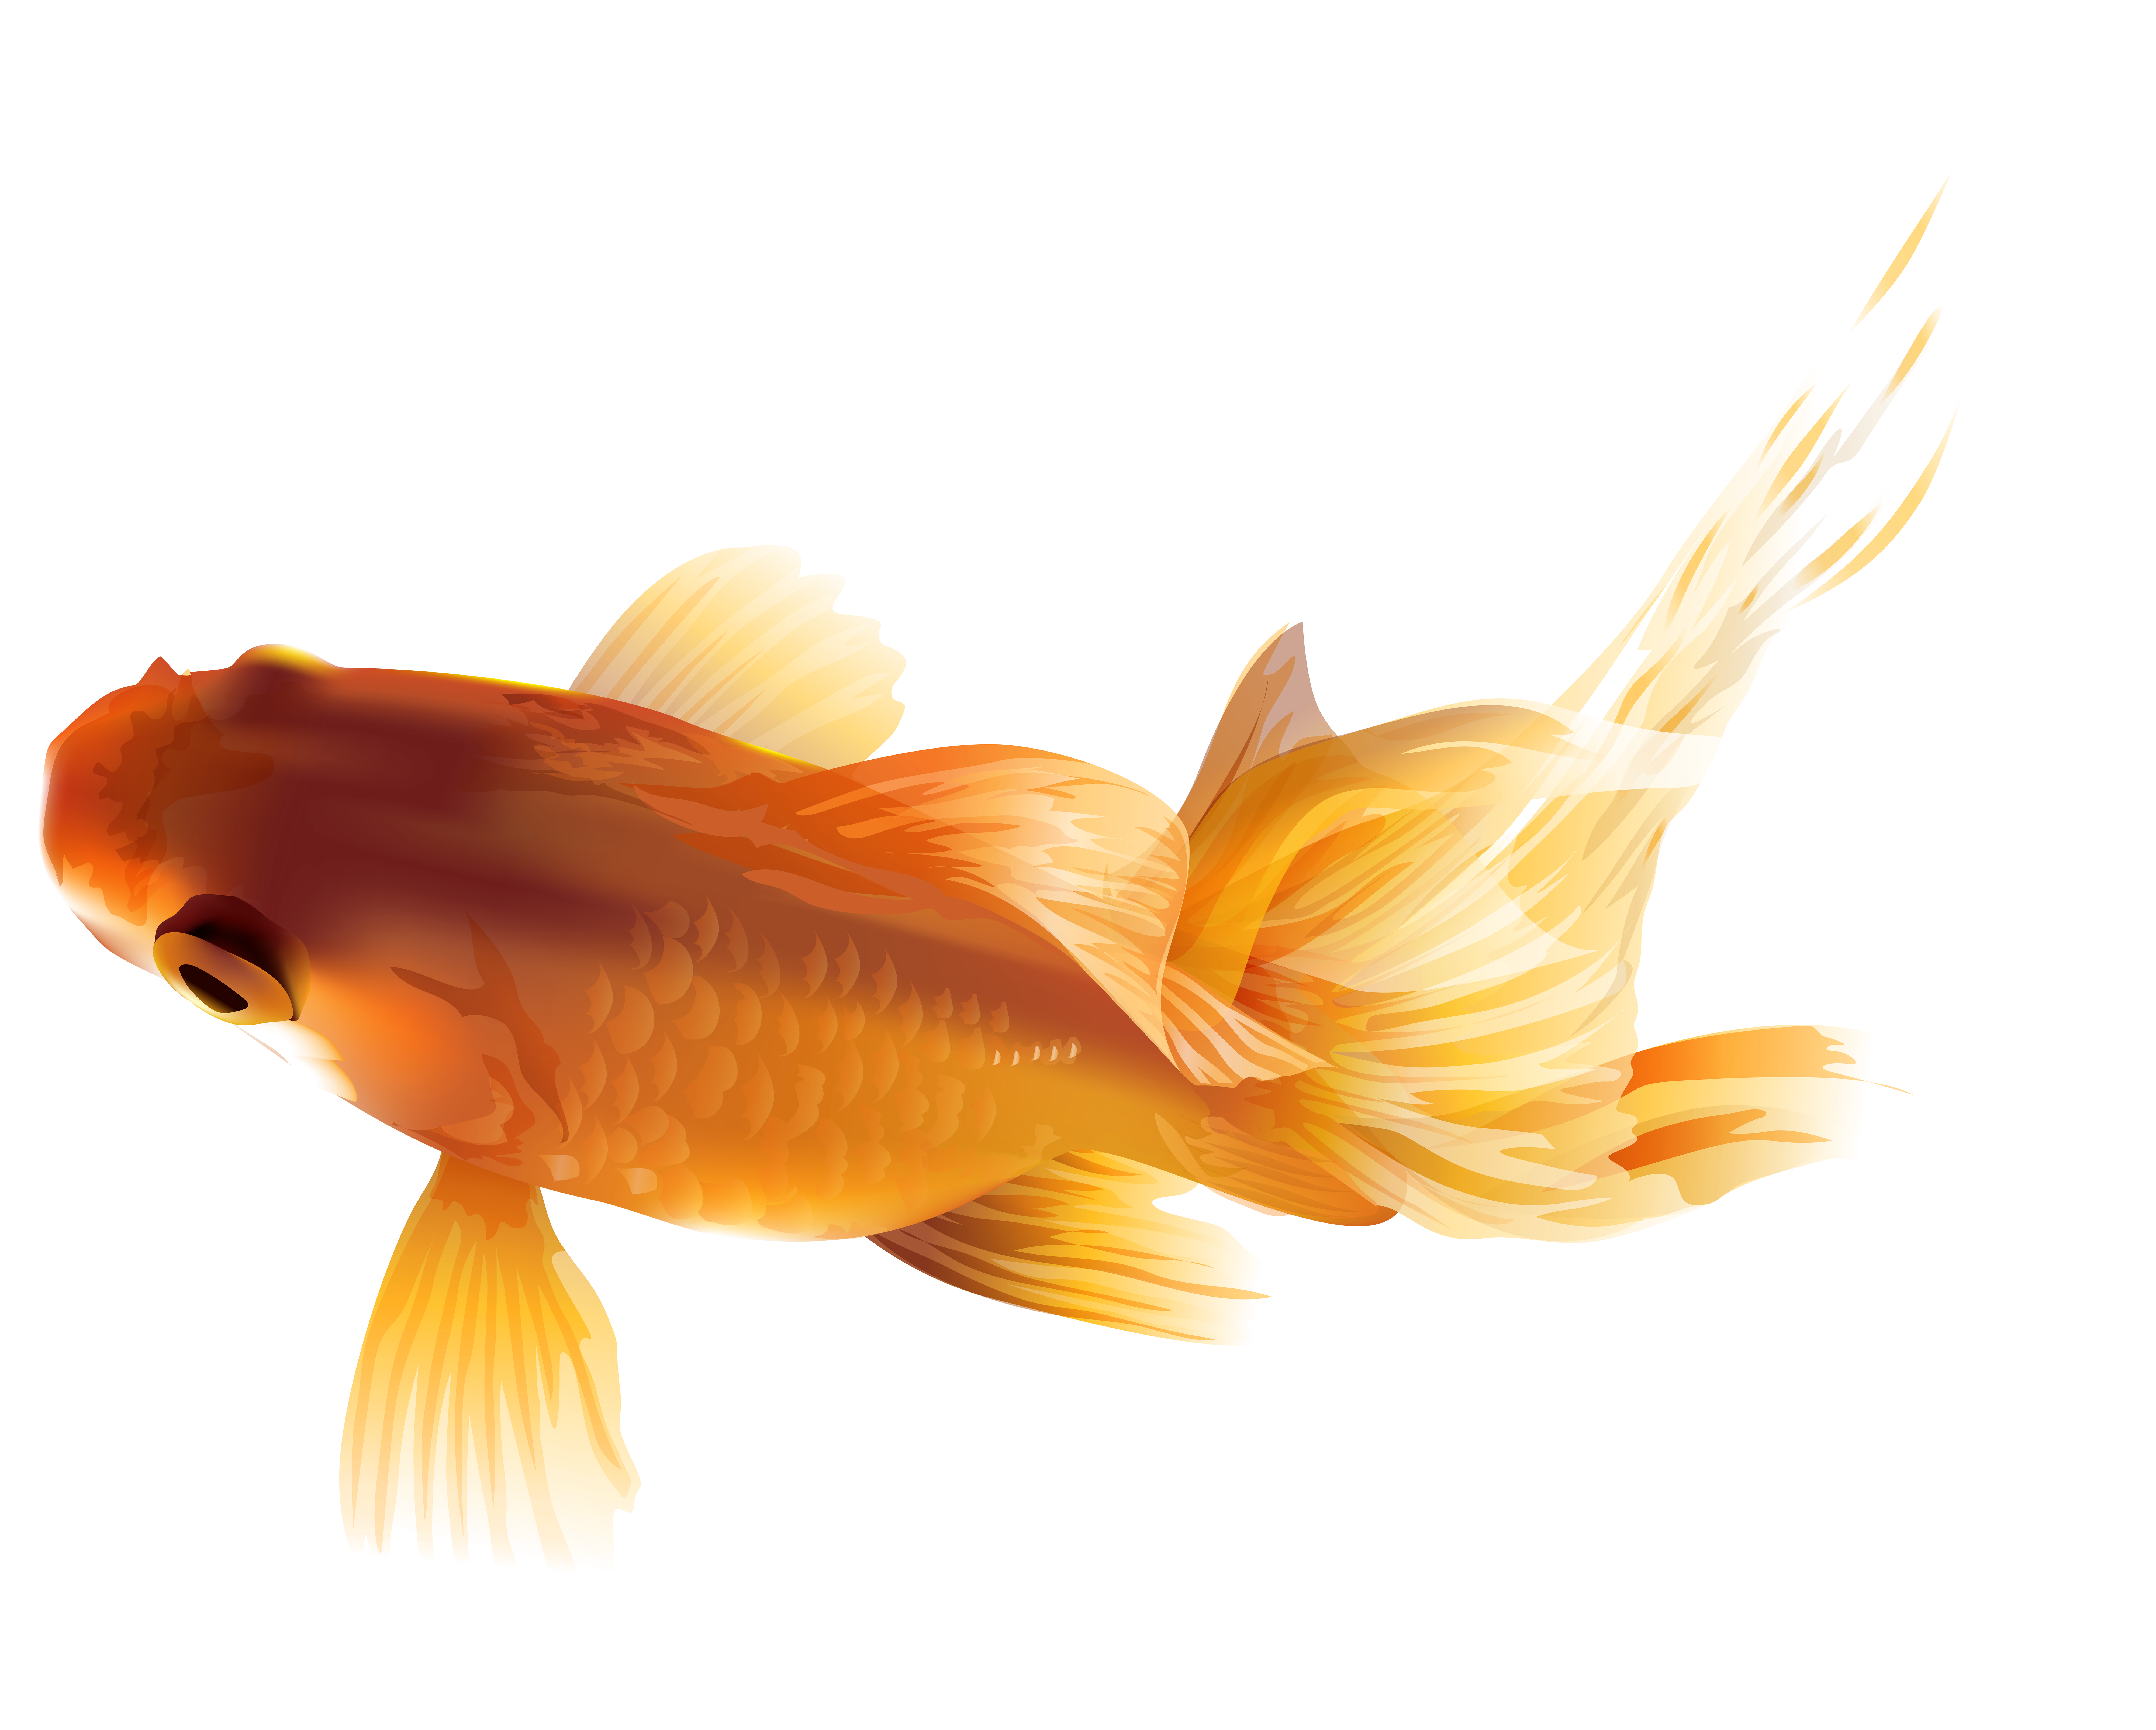 Clipart gold fish banner freeuse stock Goldfish PNG Transparent Clip Art Image | Gallery Yopriceville ... banner freeuse stock